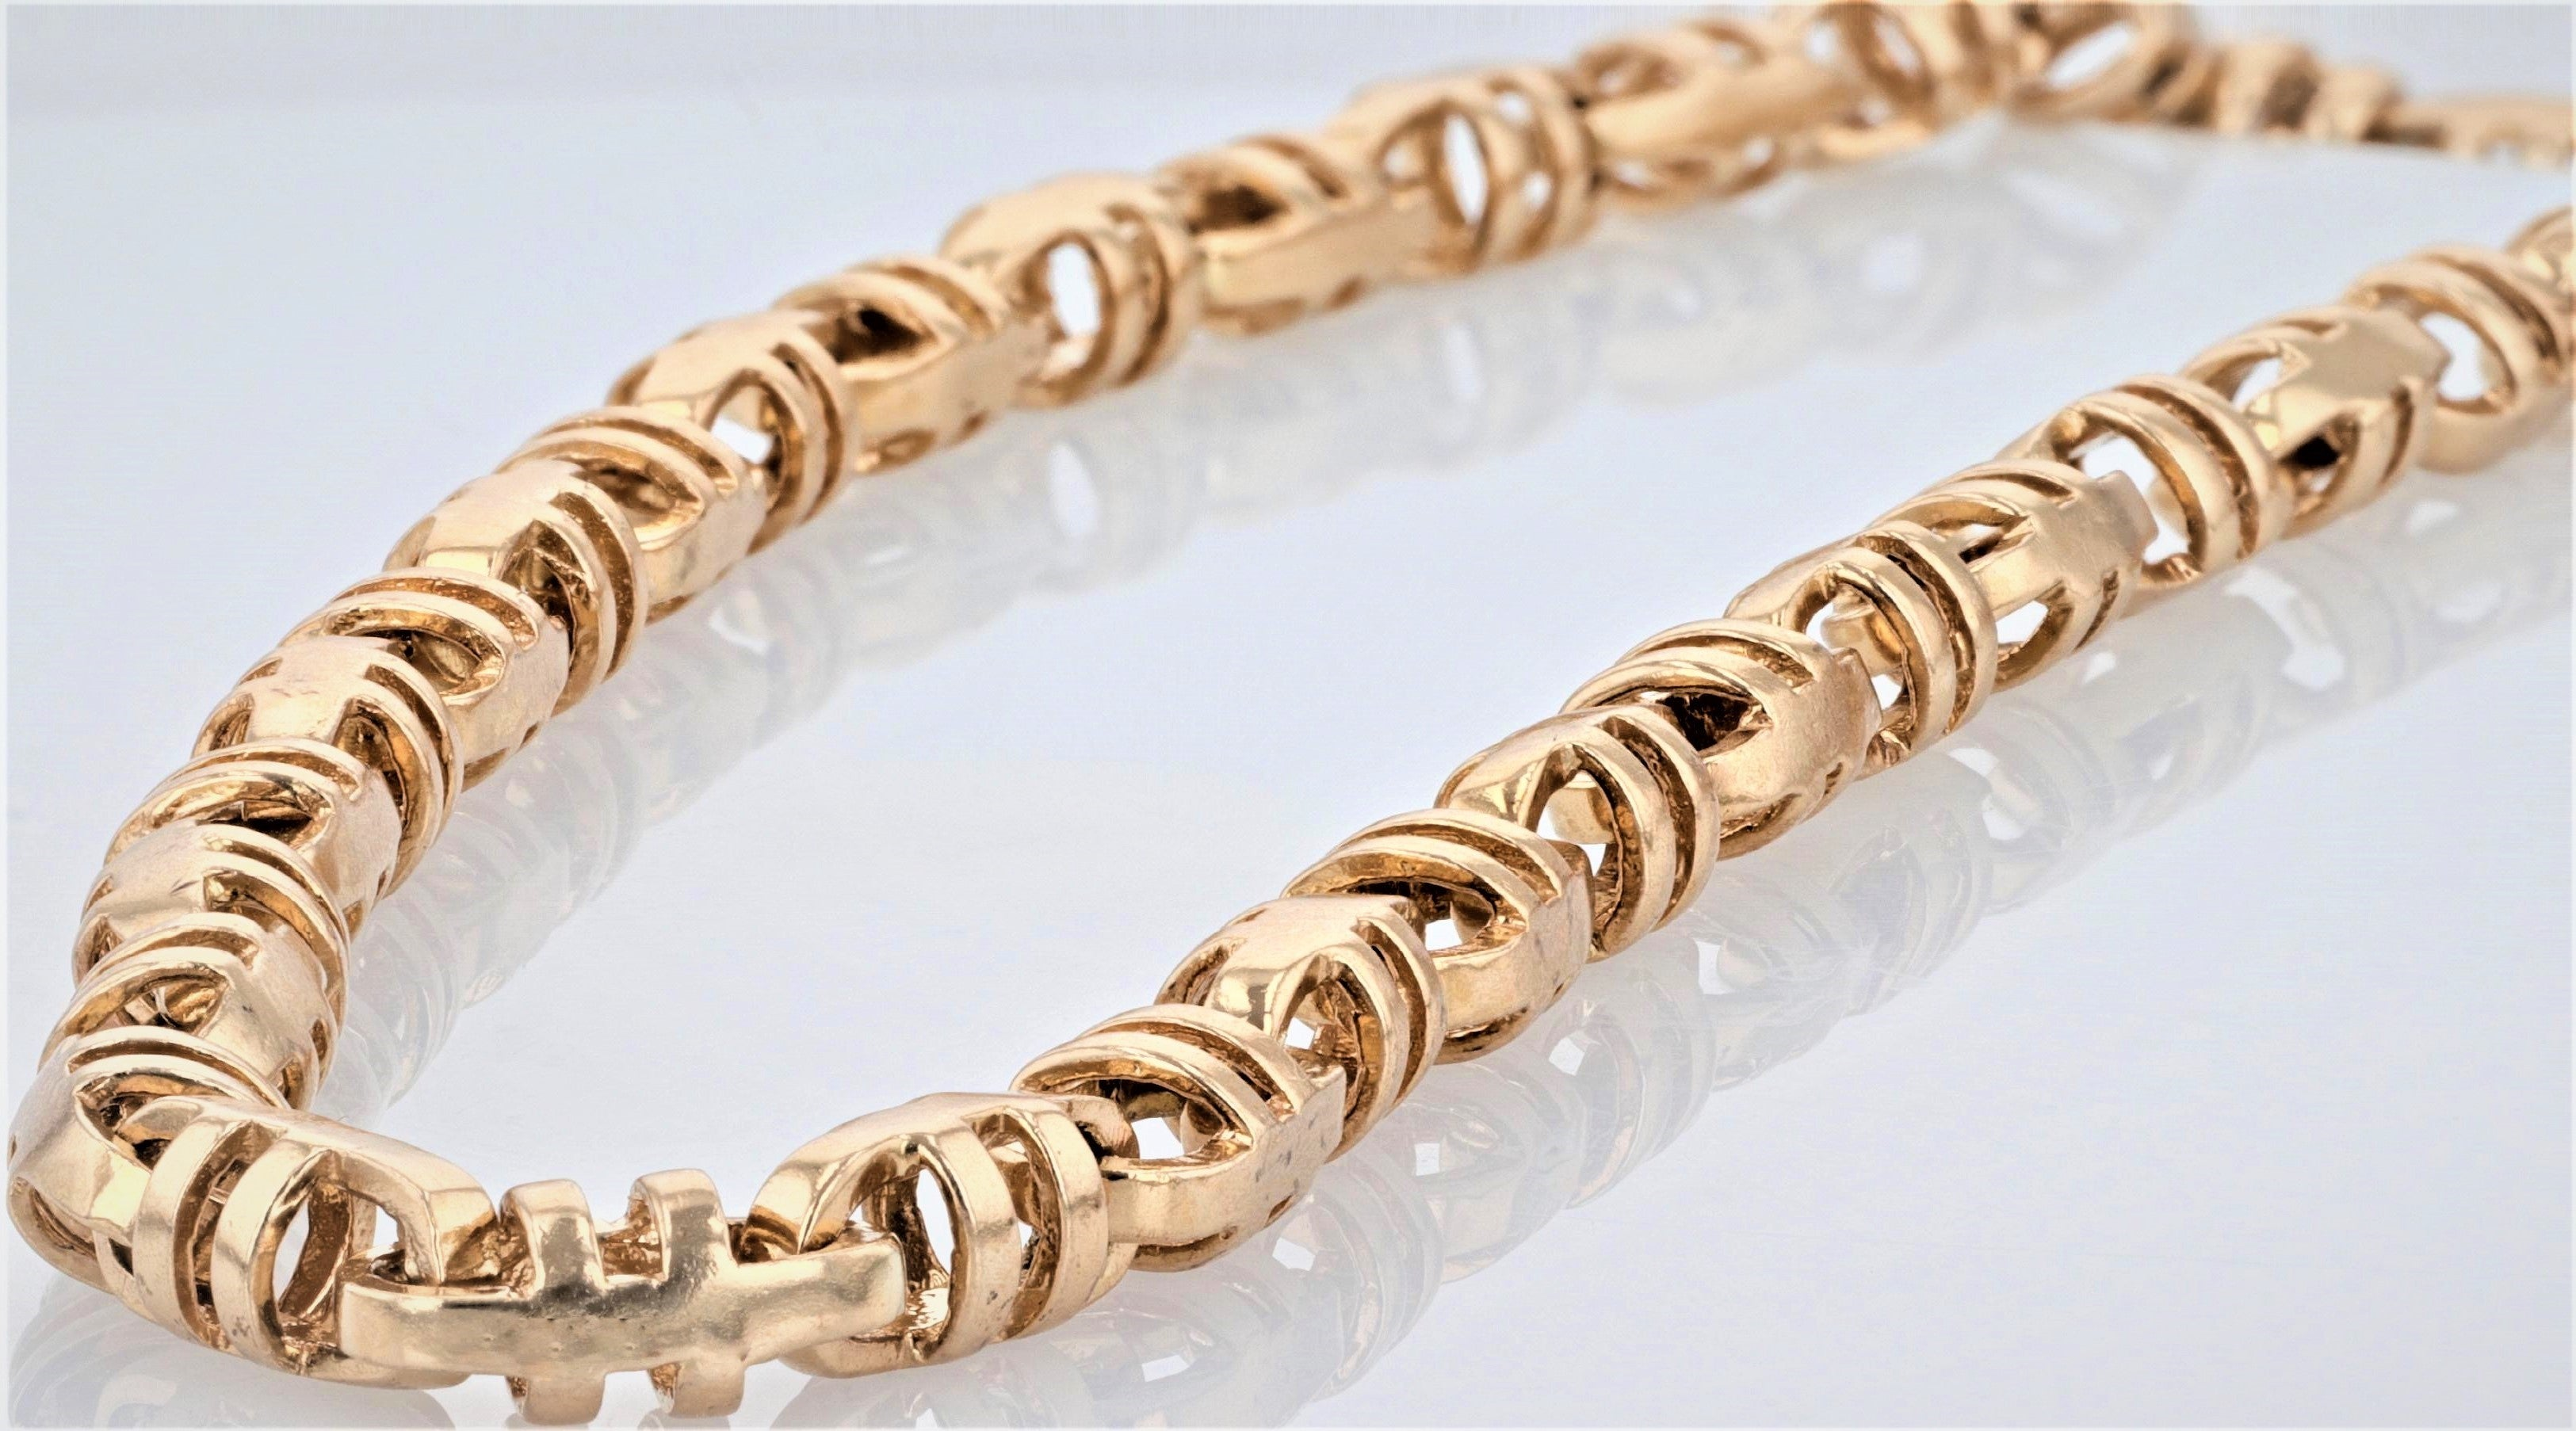 10K Men's Yellow Gold (Stamped) 28 inch Slotted Barrel Link Dress Chain